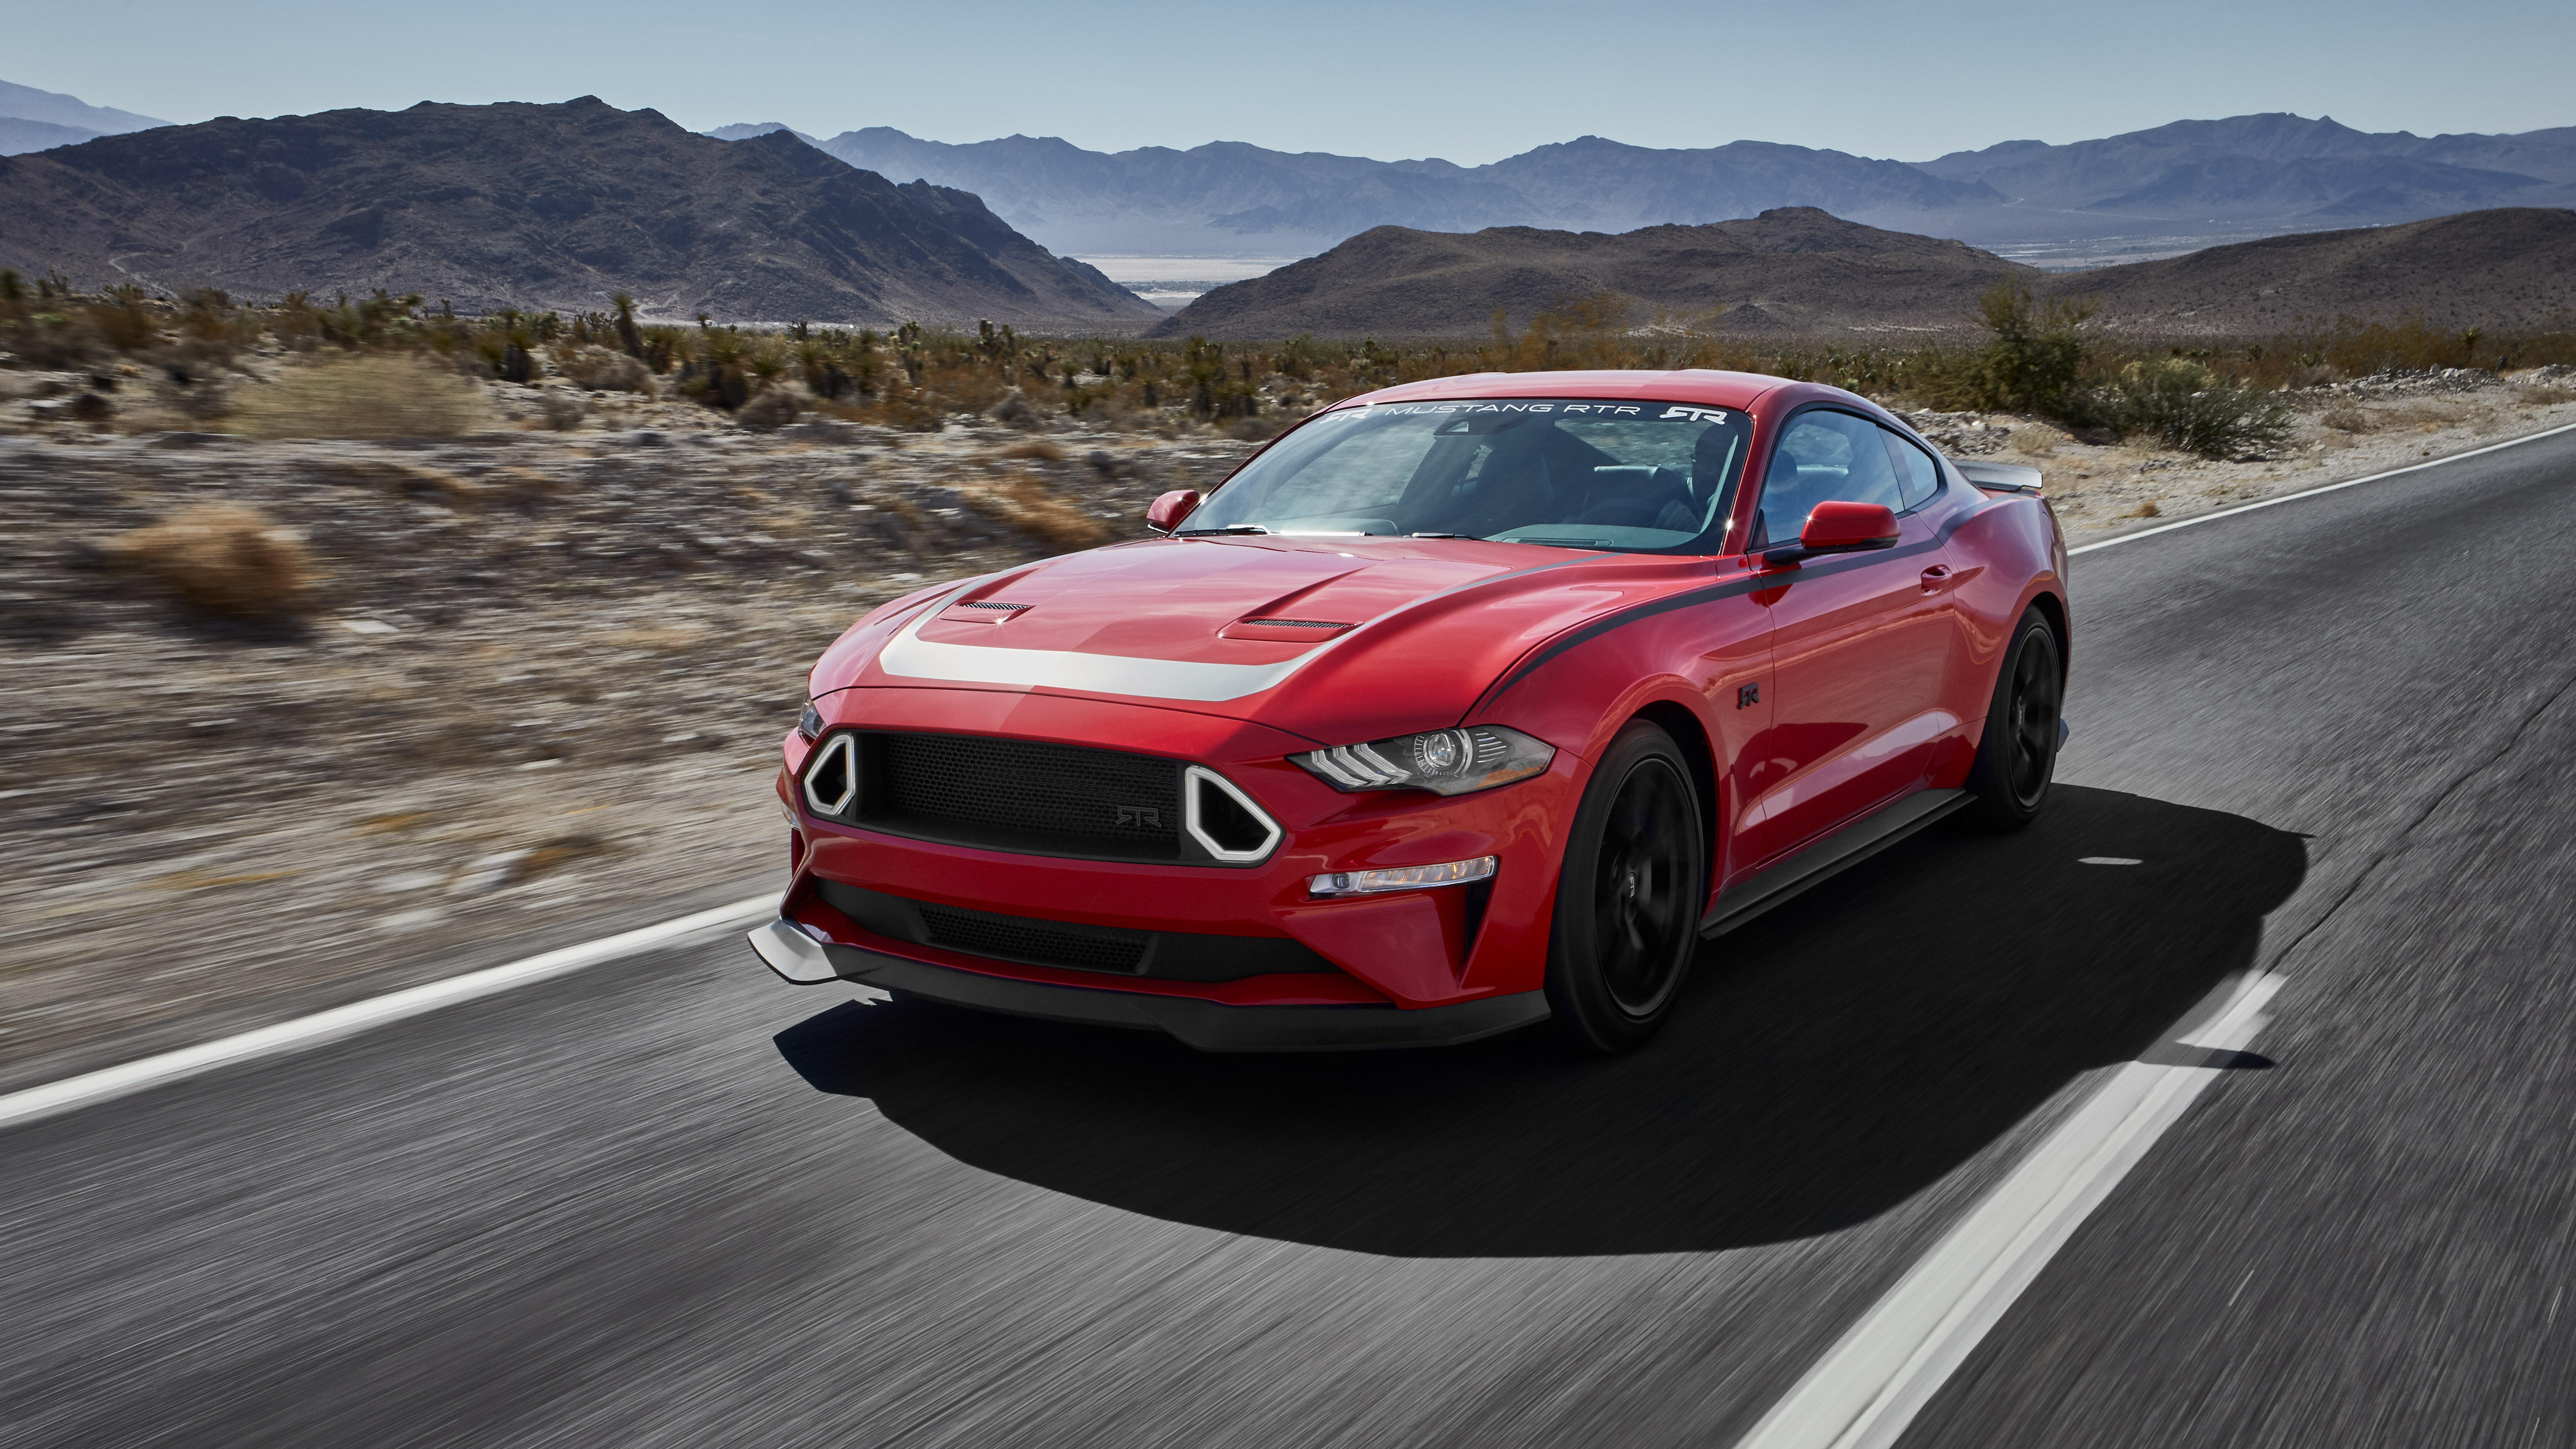 Rtr Mustang For Sale